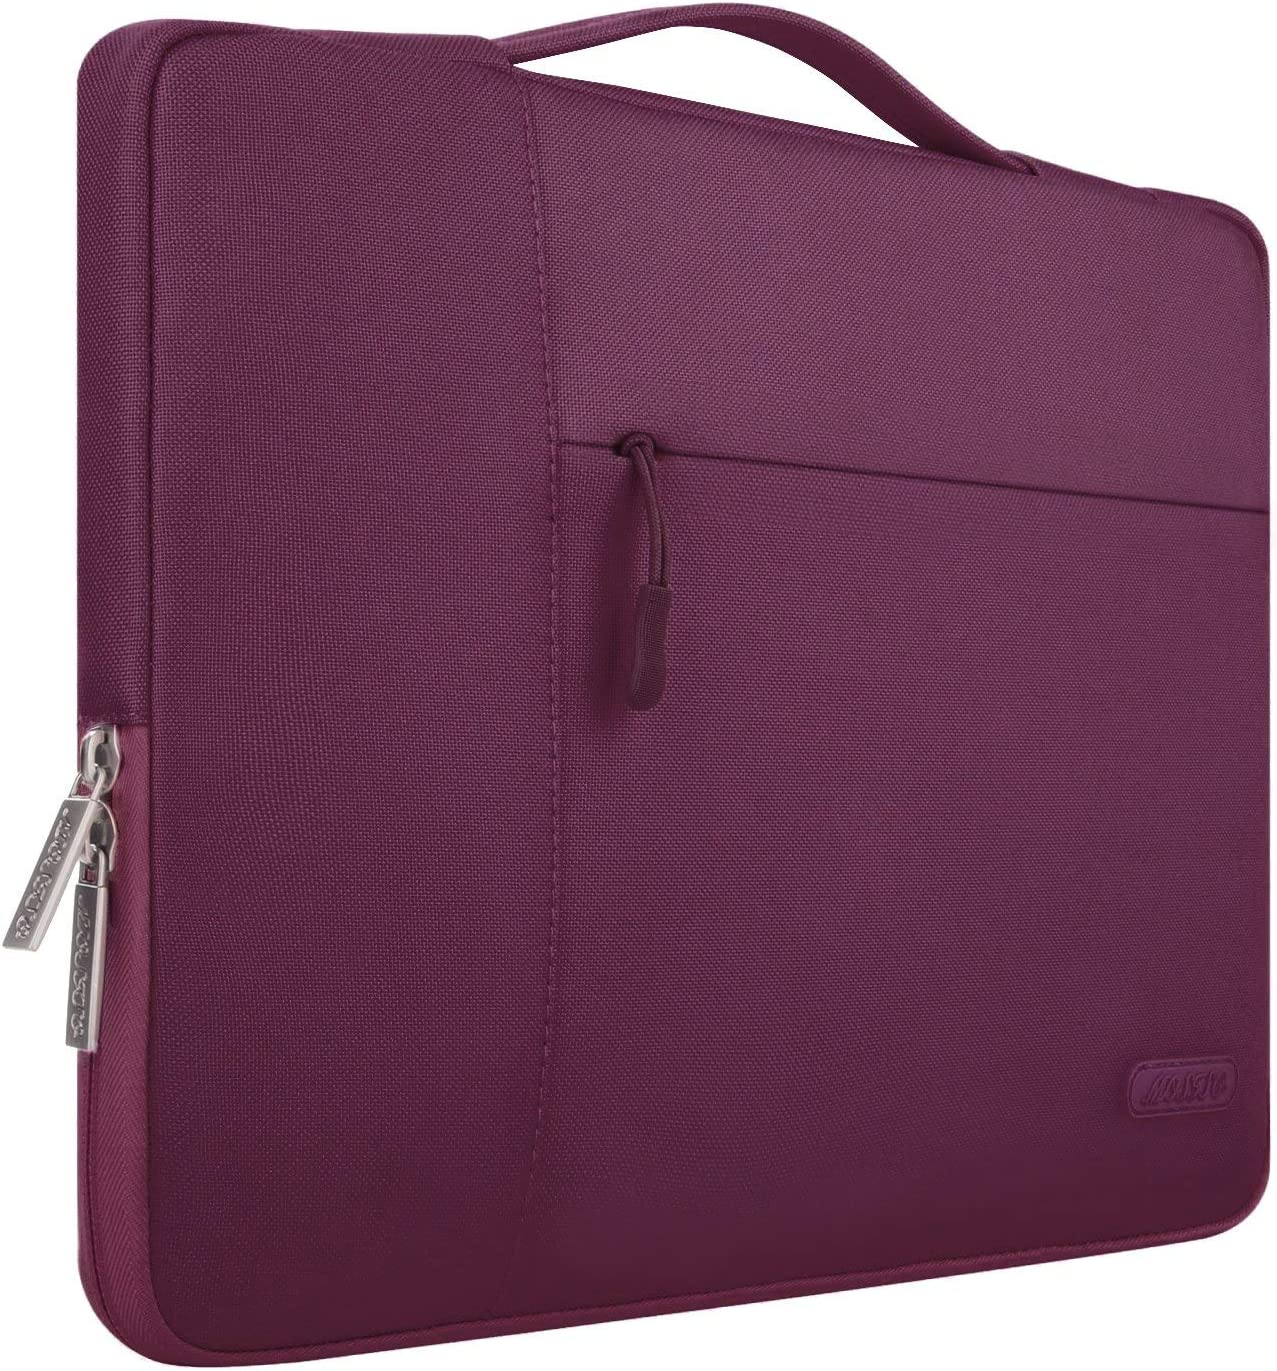 MOSISO Laptop Sleeve Compatible with MacBook Pro 16 inch, 15 15.4 15.6 inch Dell Lenovo HP Asus Acer Samsung Sony Chromebook,Polyester Multifunctional Briefcase Carrying Bag, Burgundy